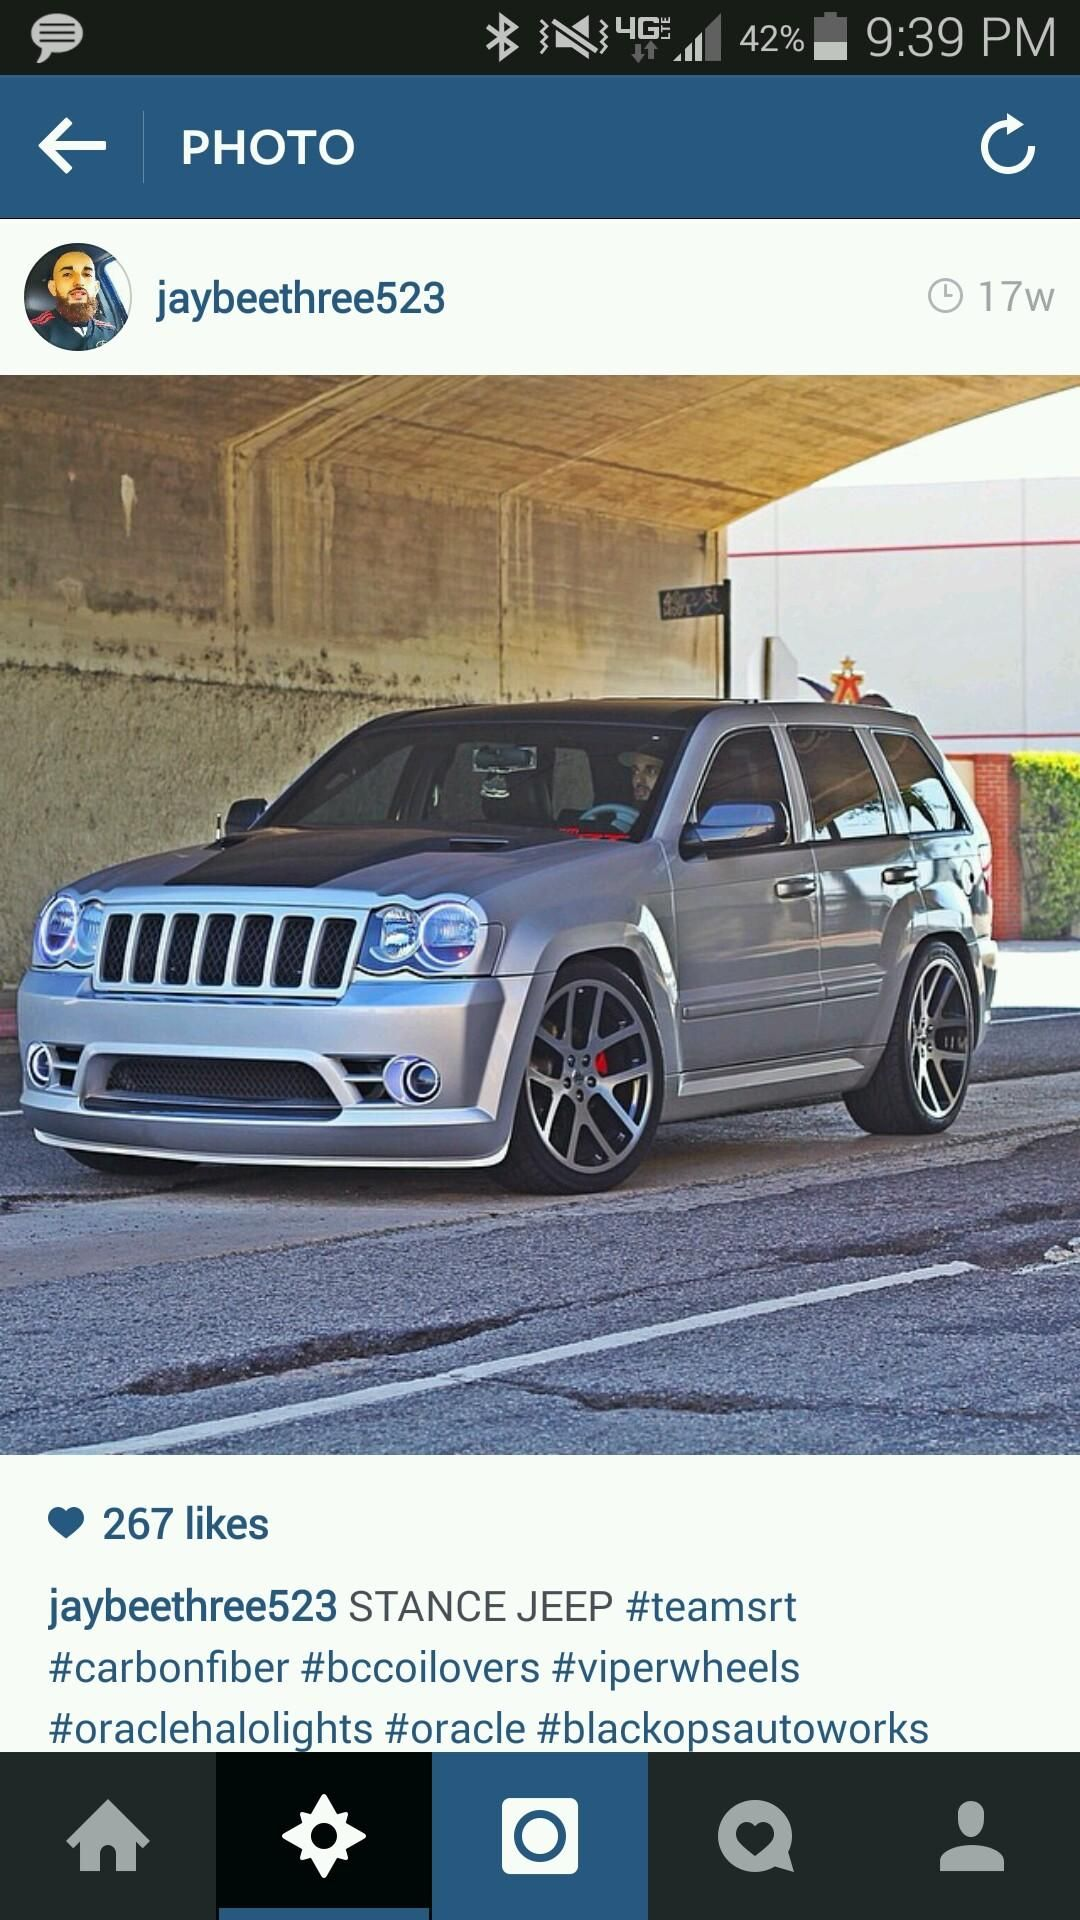 Srt8 Jeep With 22 Viper Wheels Jeep Srt8 Jeep Cherokee Sport